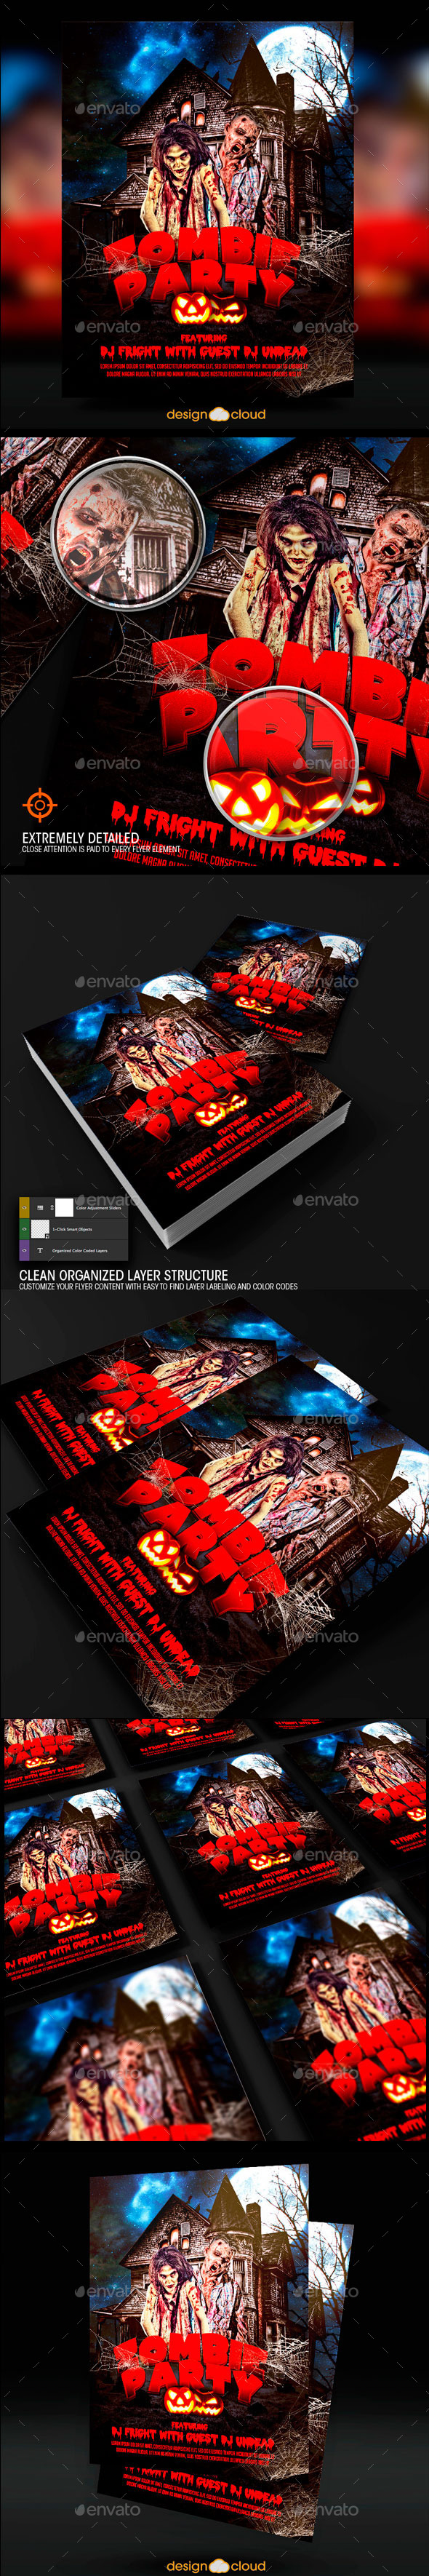 Zombie Halloween Party Flyer Template - Holidays Events